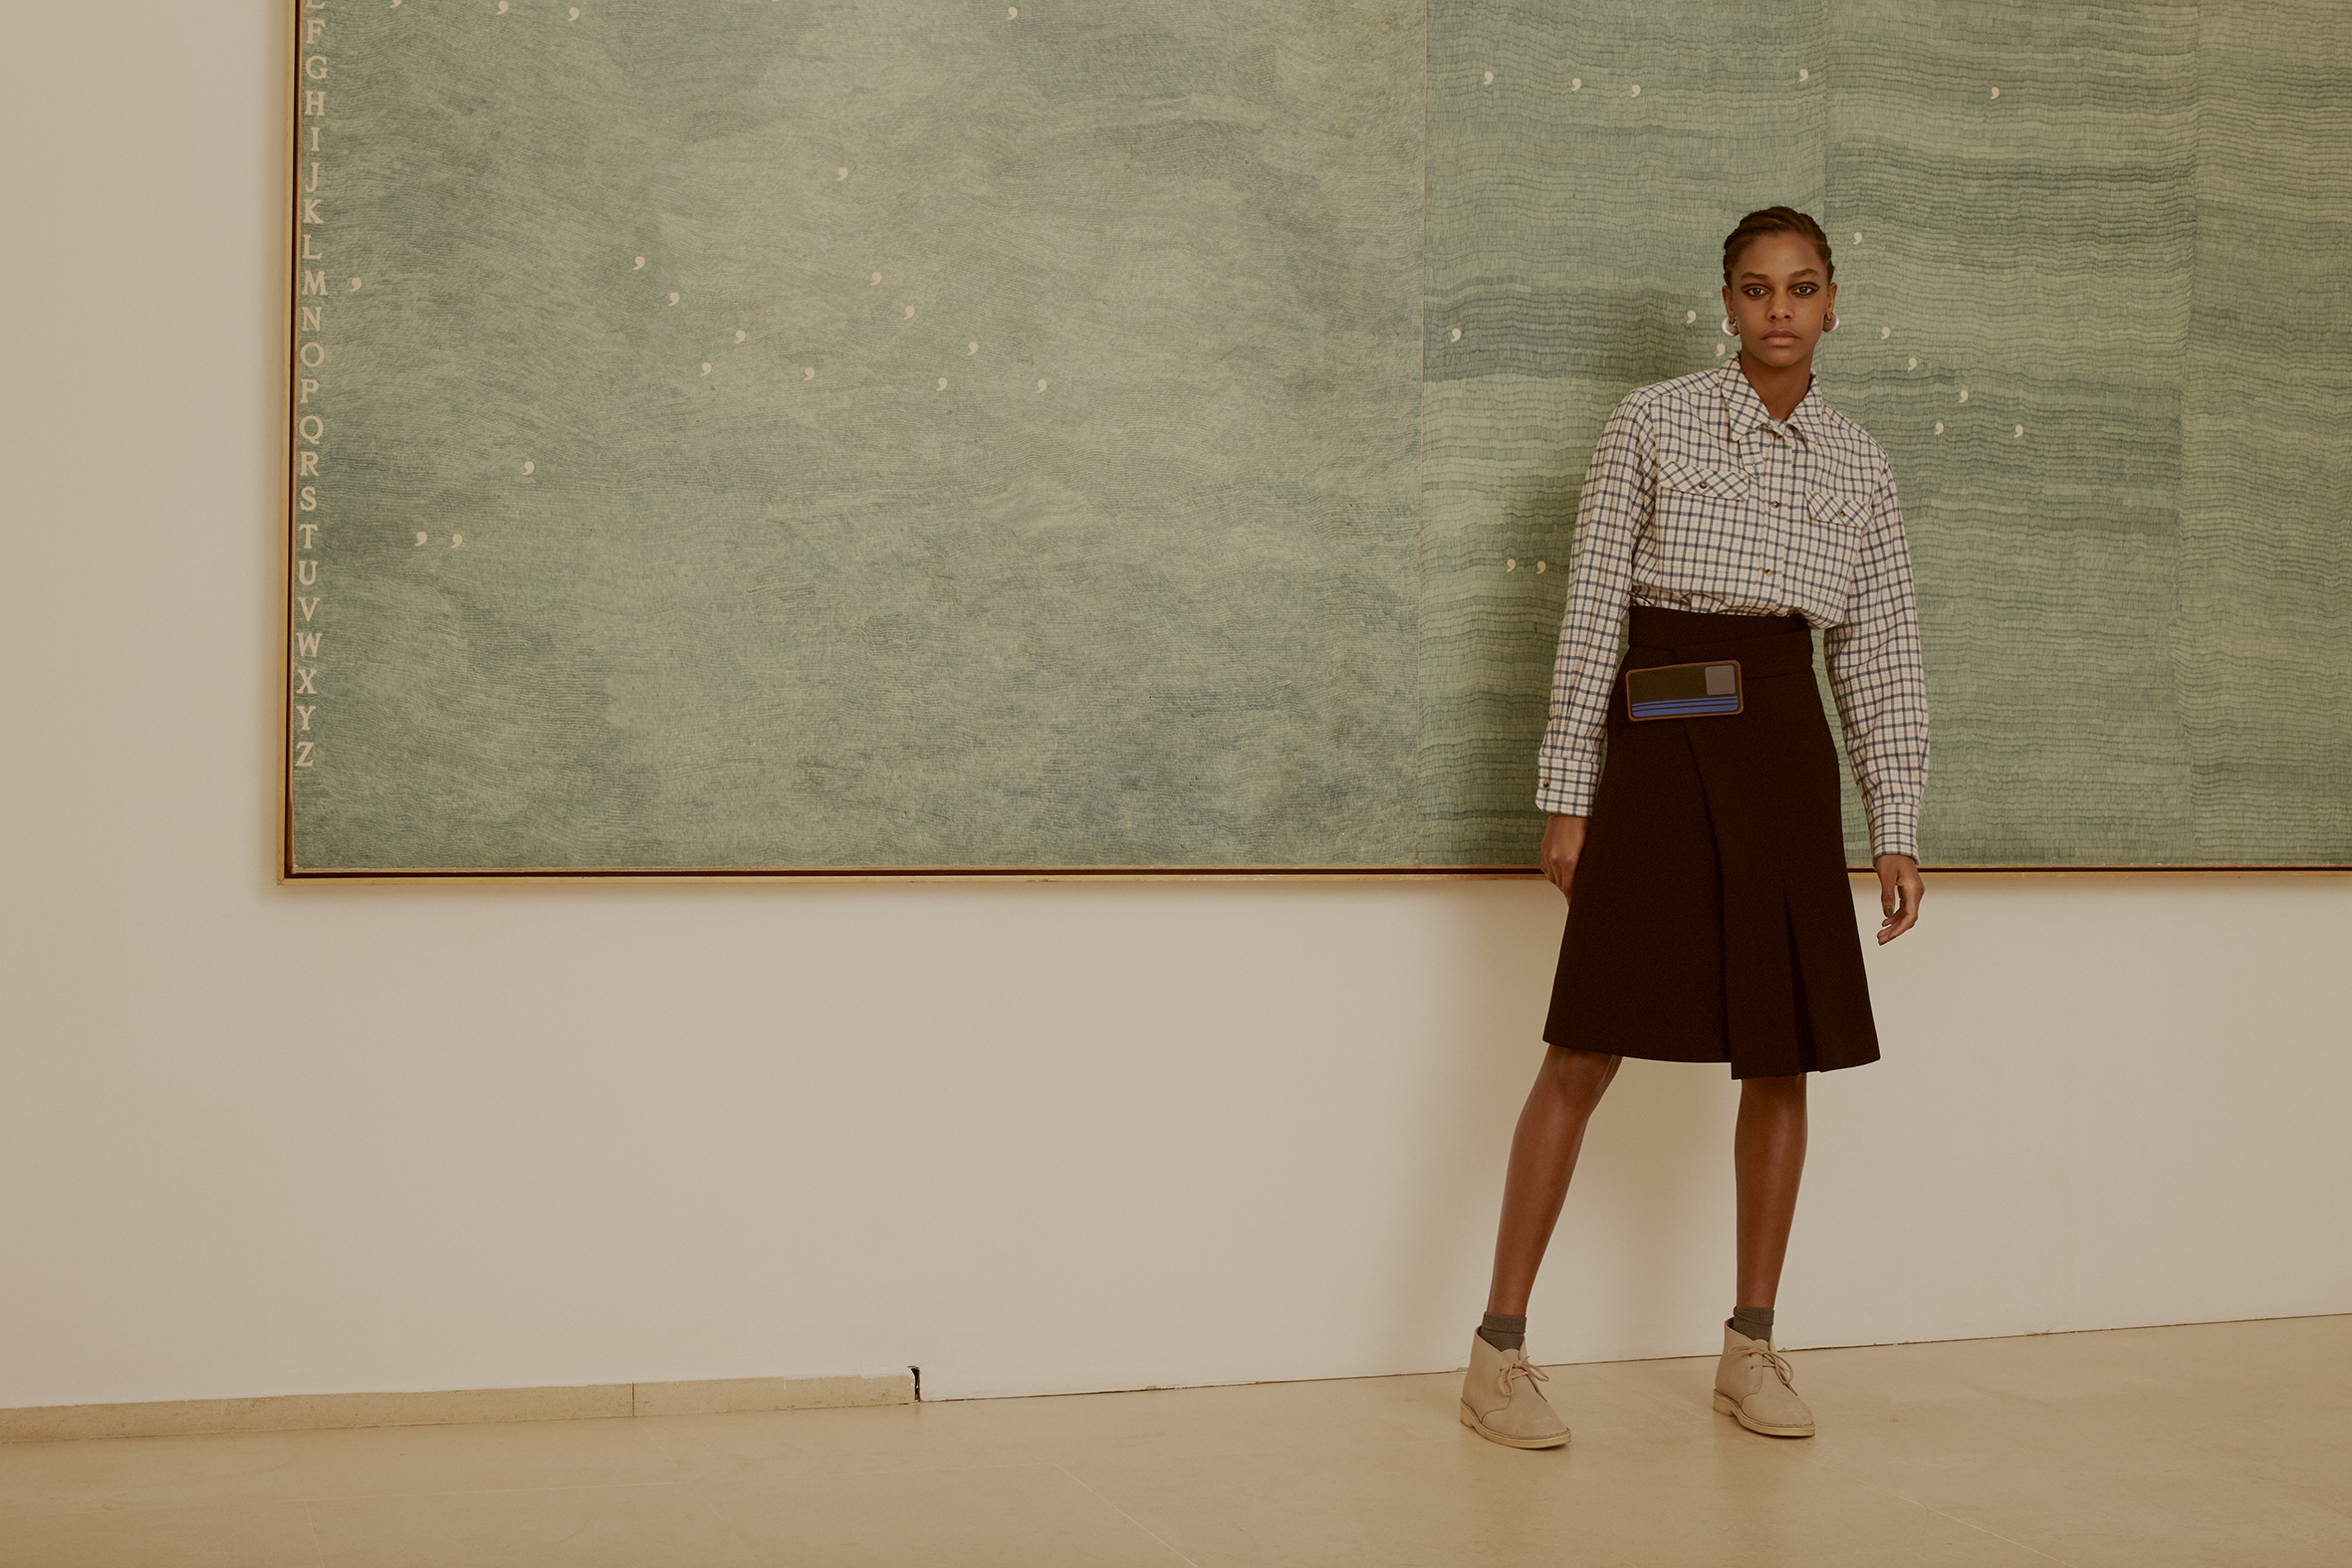 Alighiero Boetti, Mettere al mondo il mondo, 1975.   Rubber strap wrap skirt PRADA, wool checkered shirt HOLLAND & HOLLAND, silver brass earrings CÉLINE, silk socks MARIA LA ROSA, suede desert boots CLARKS